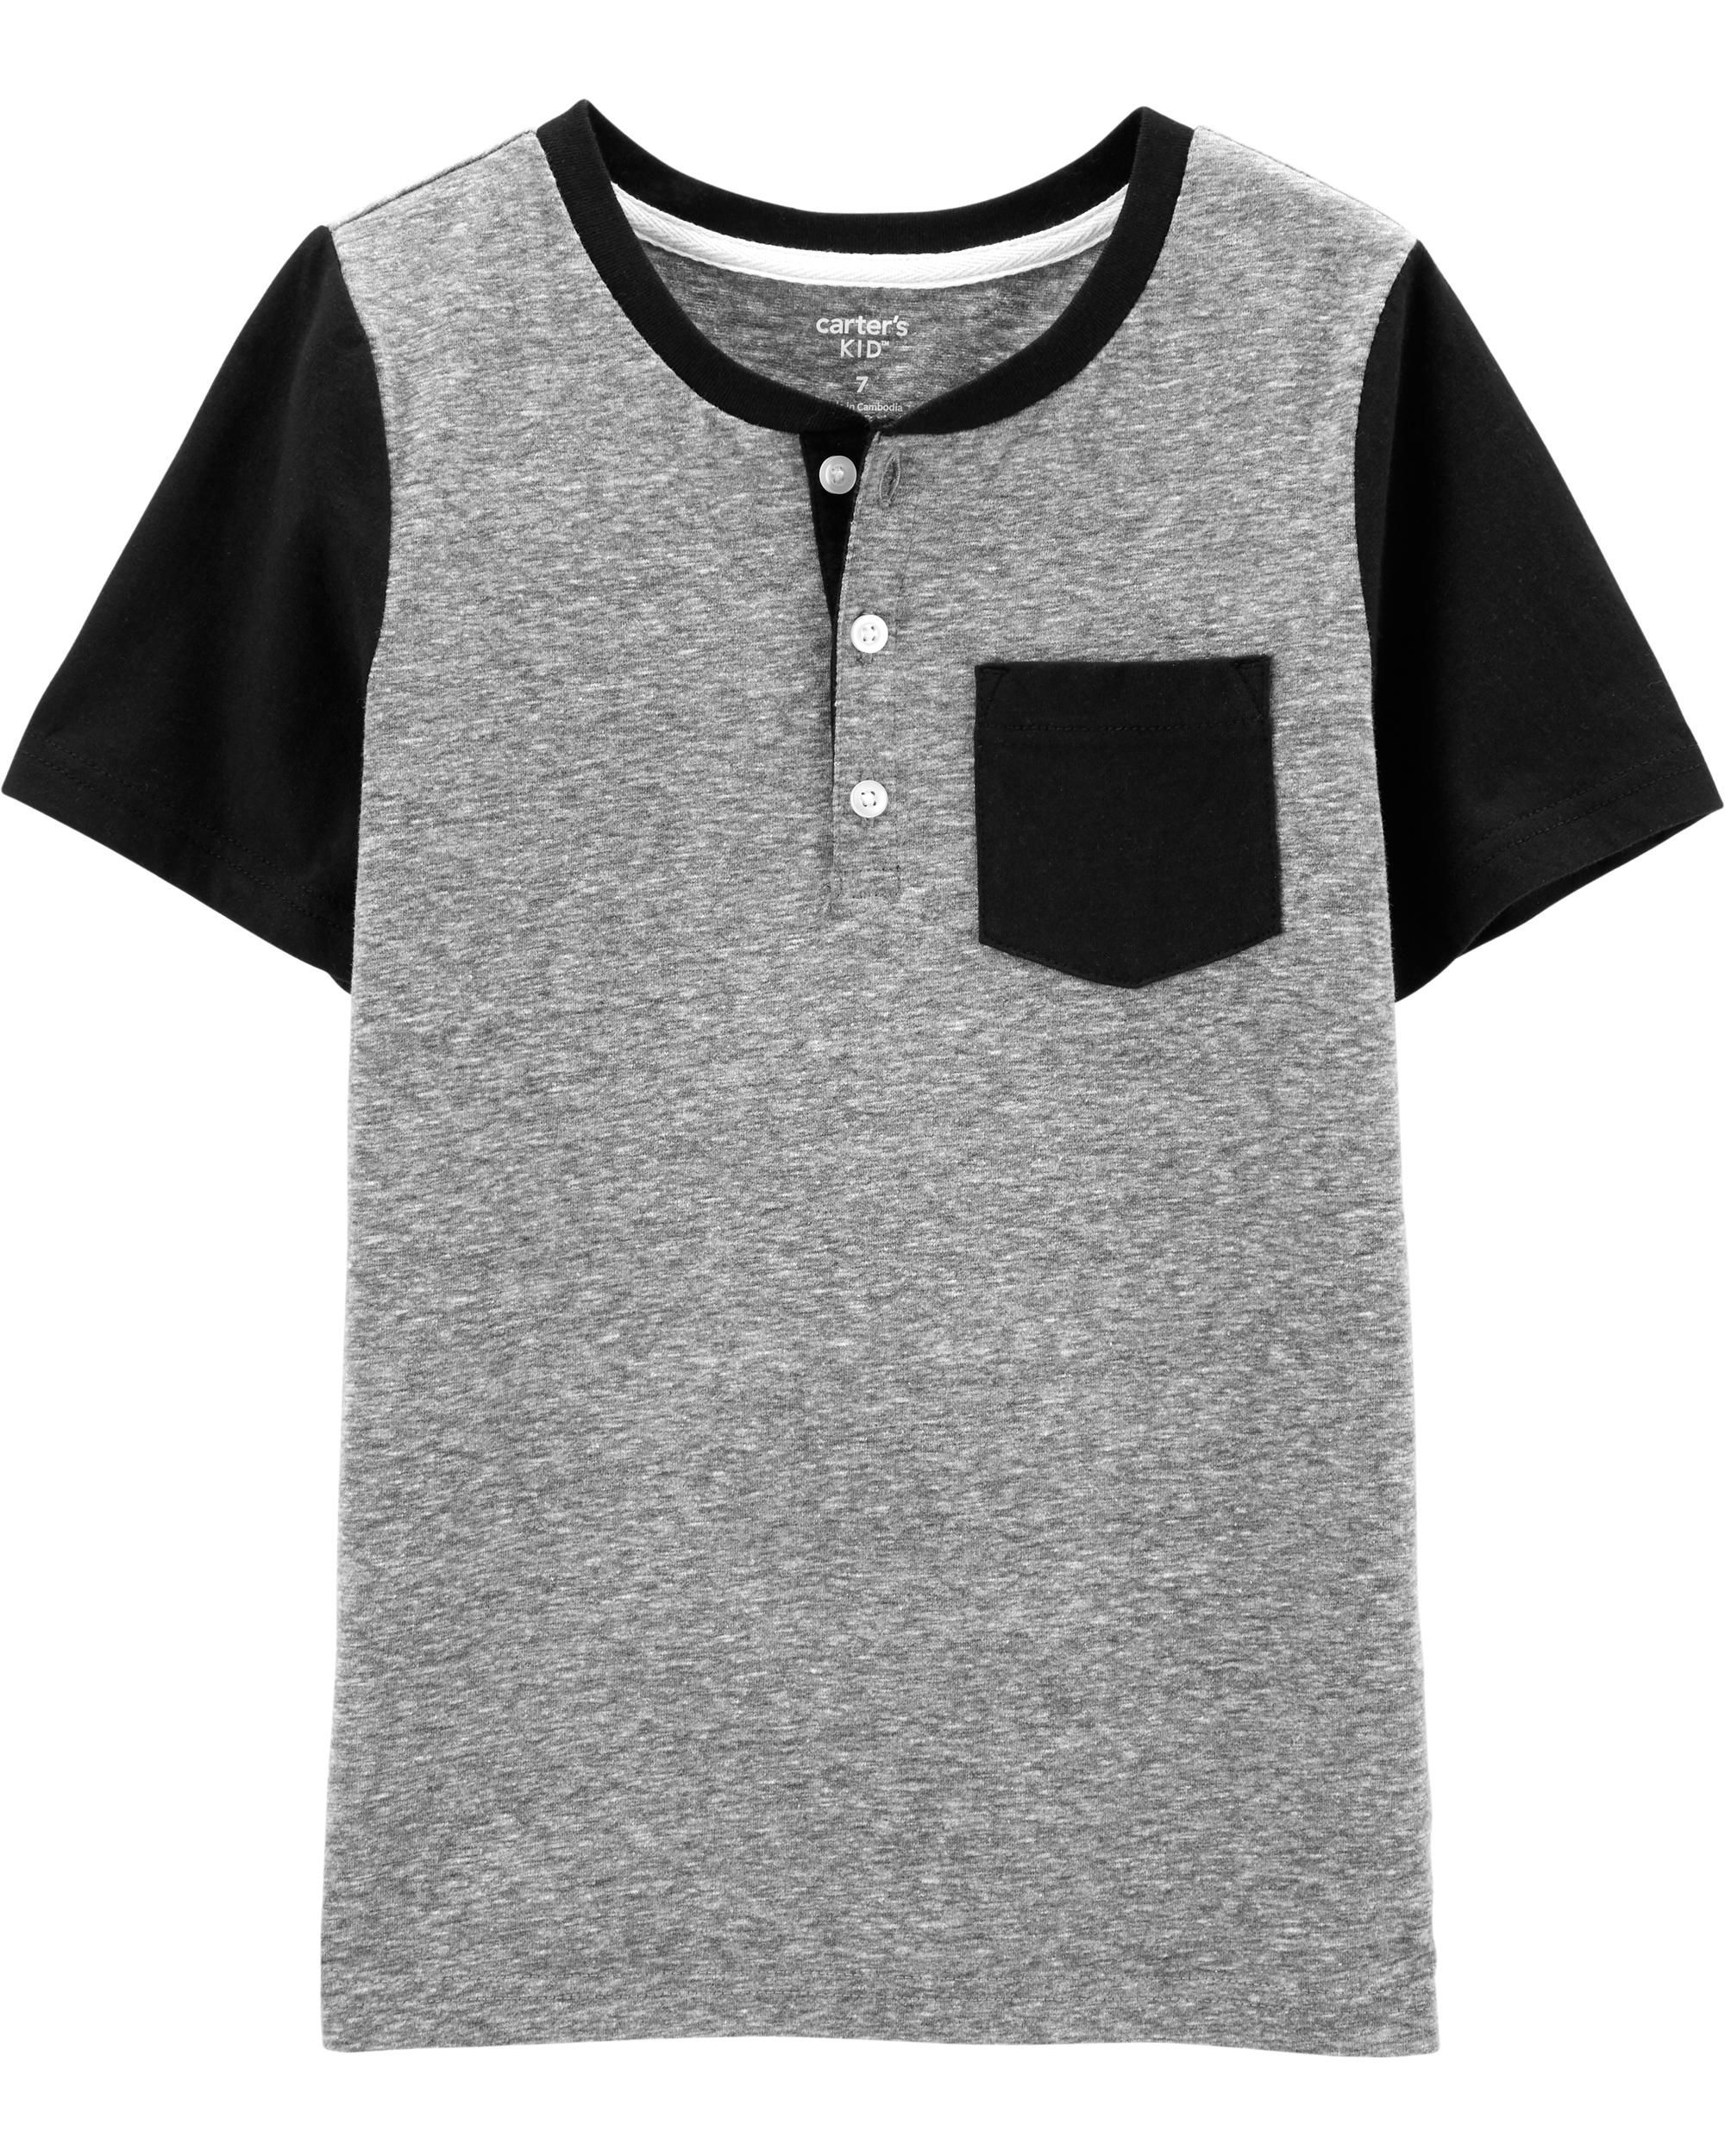 A for Awesome Boys Raglan Henley Short-Sleeve Graphic Tee